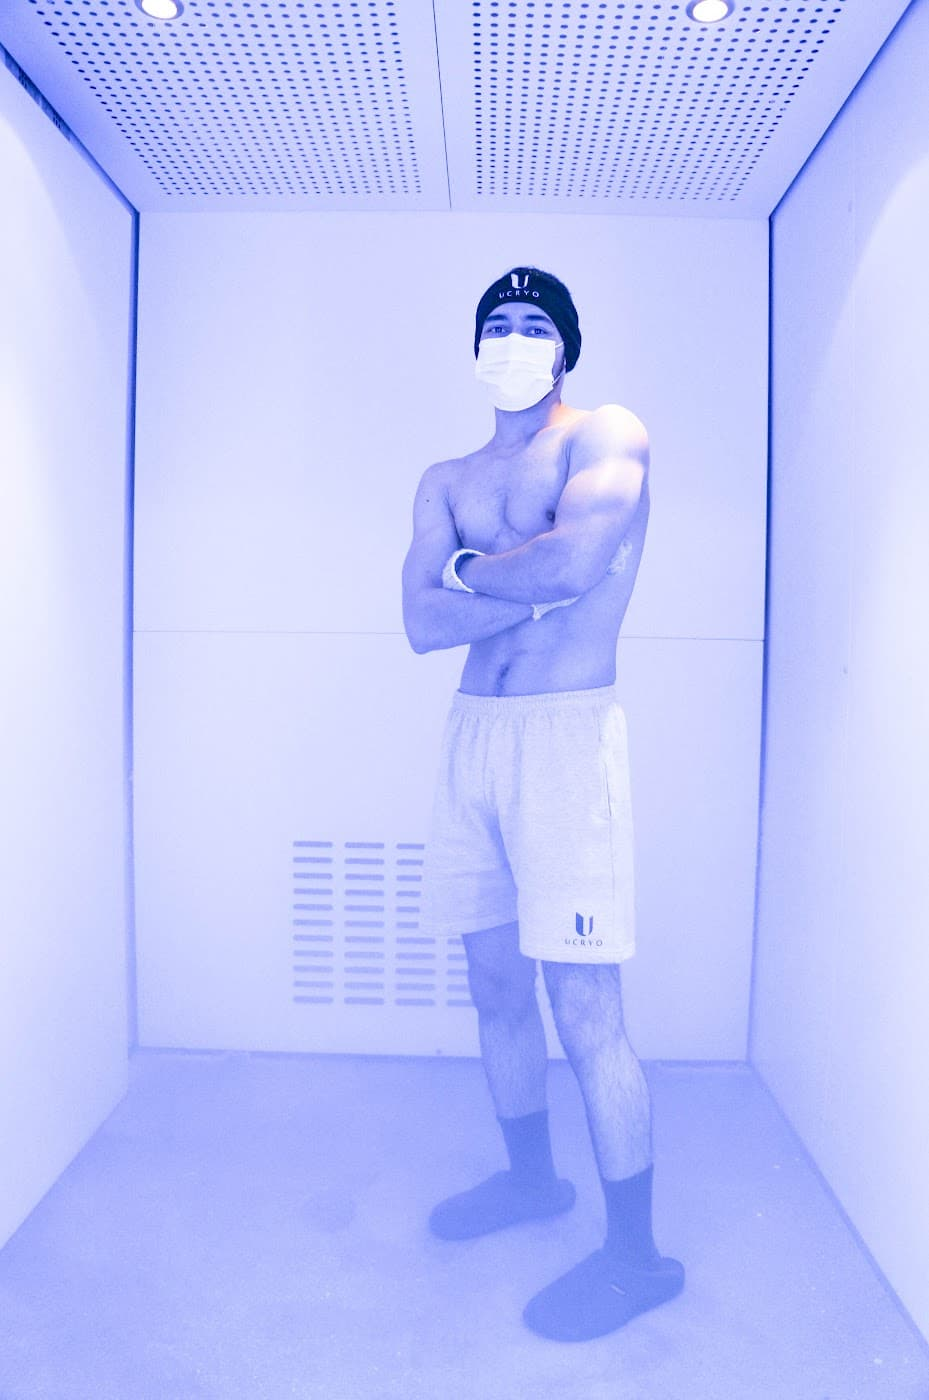 man in ucryo cryotherapy chamber